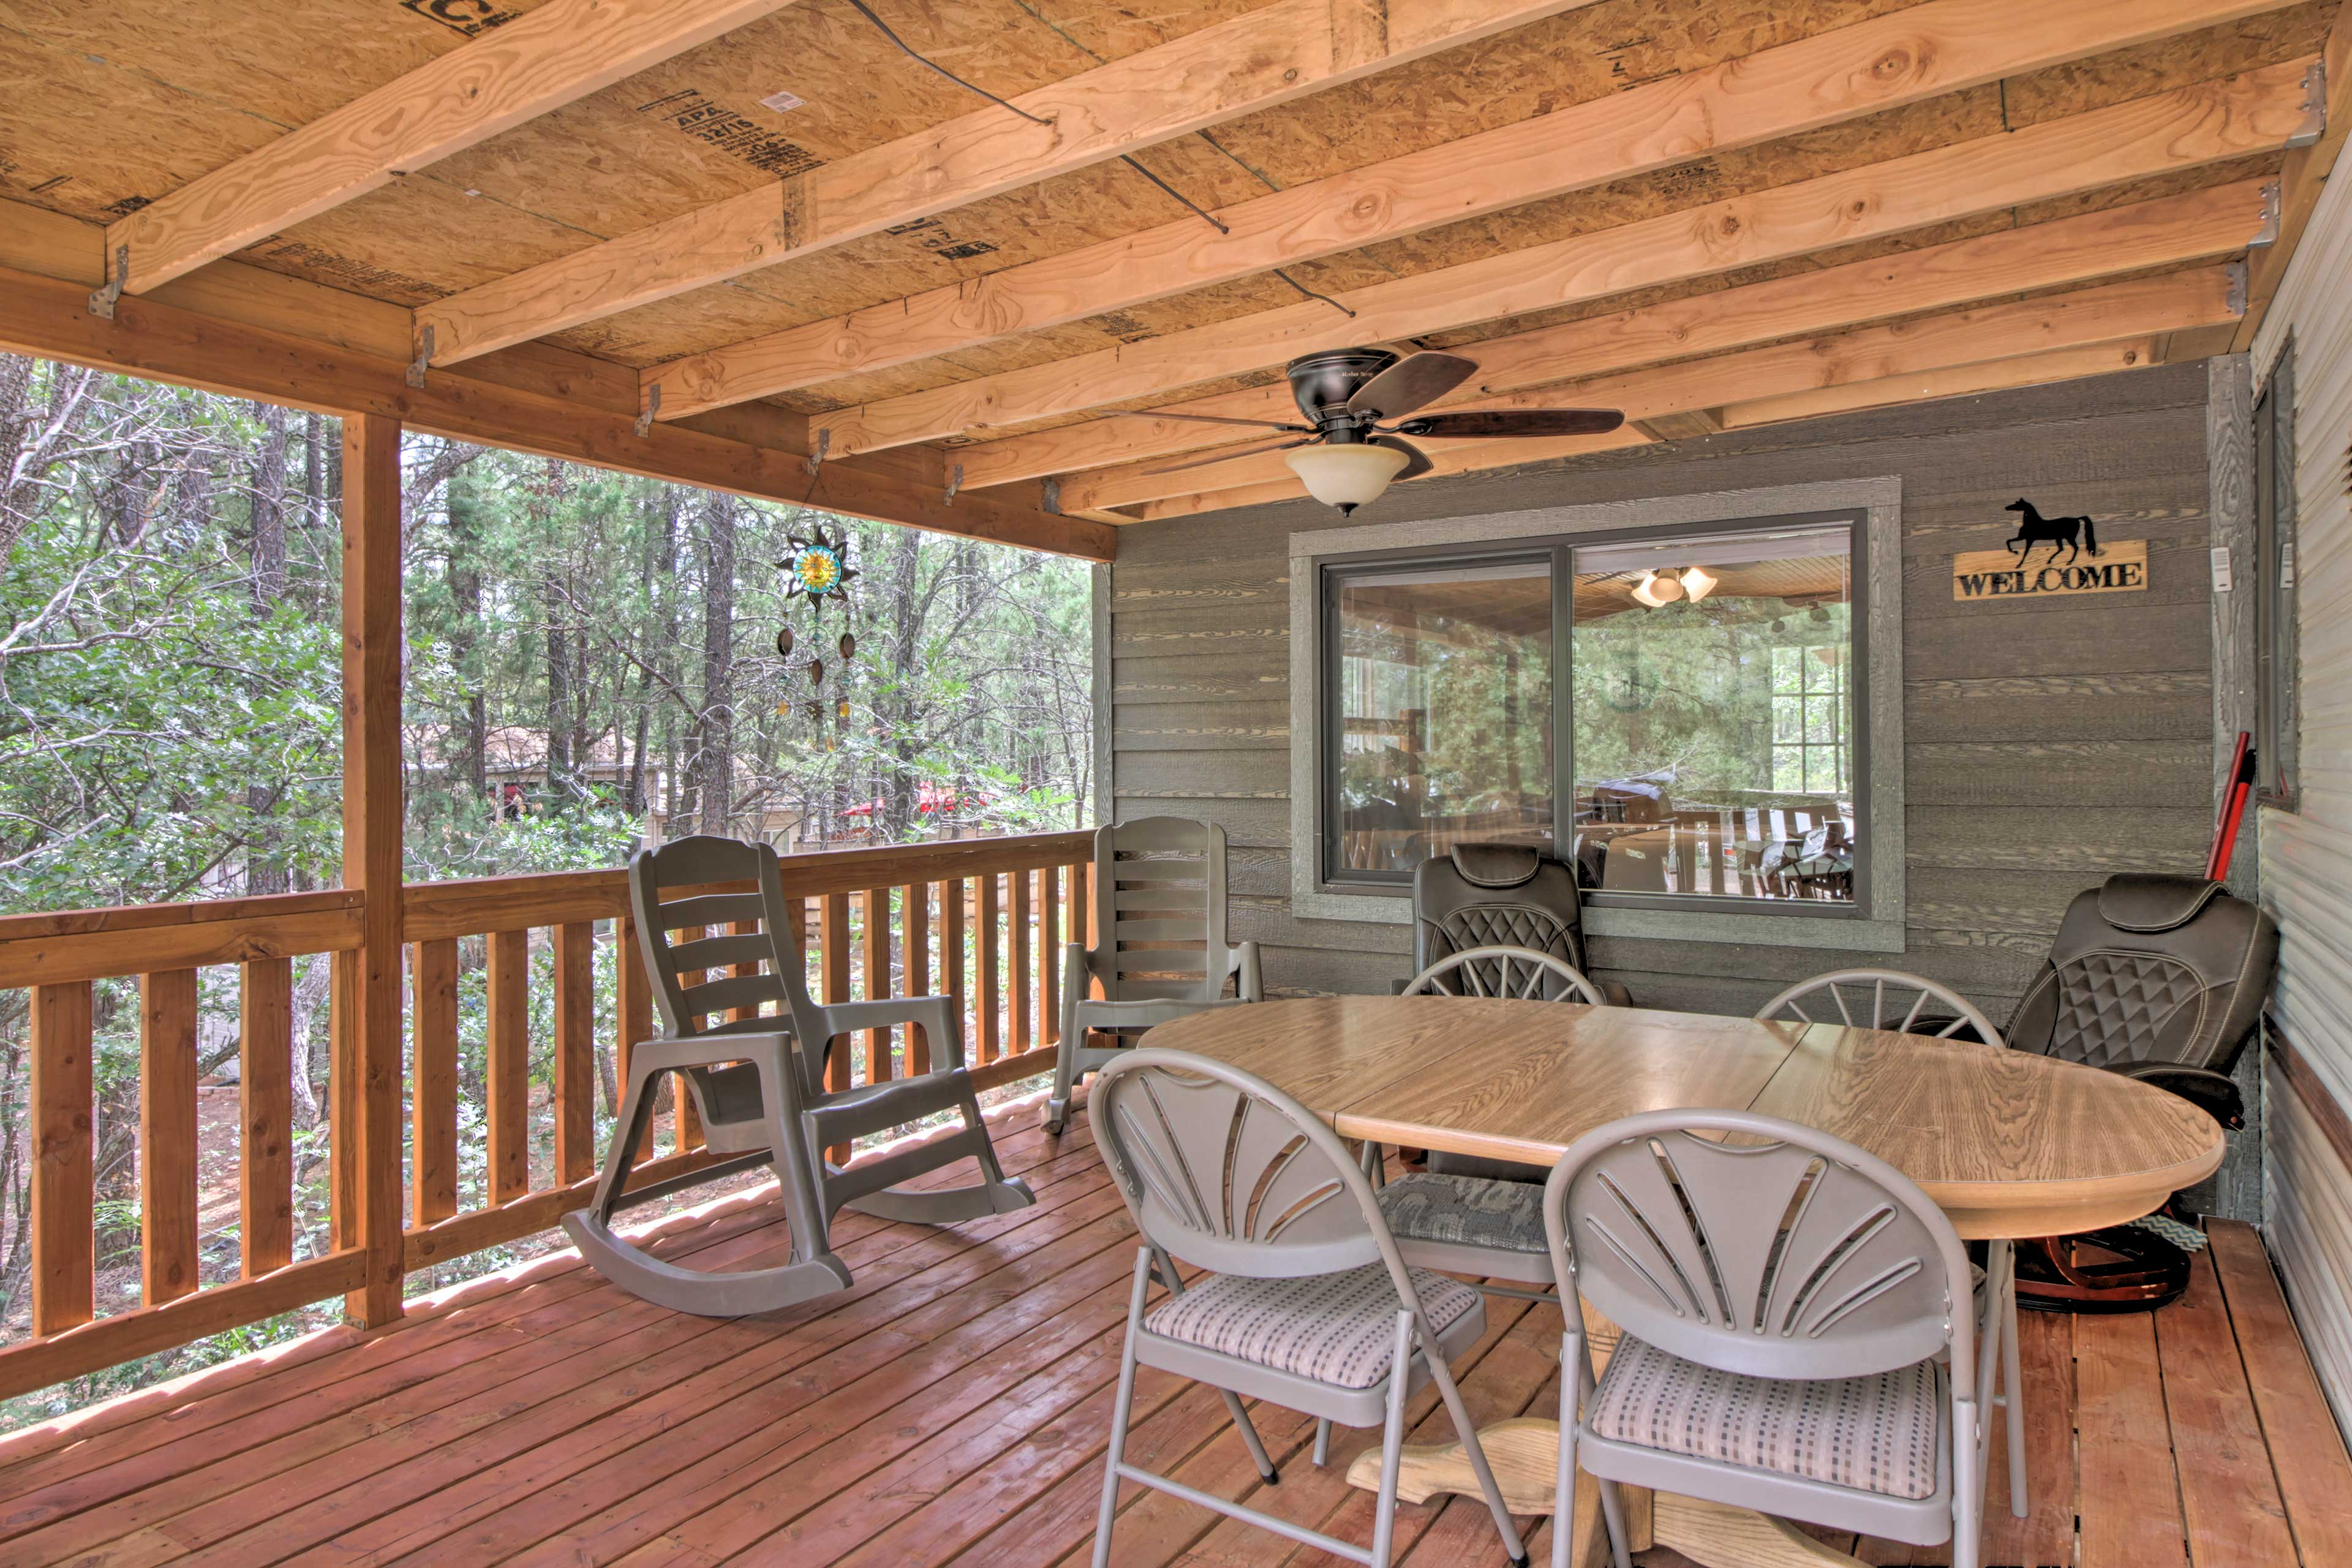 End each day on the vacation rental's covered deck, complete with a ceiling fan.